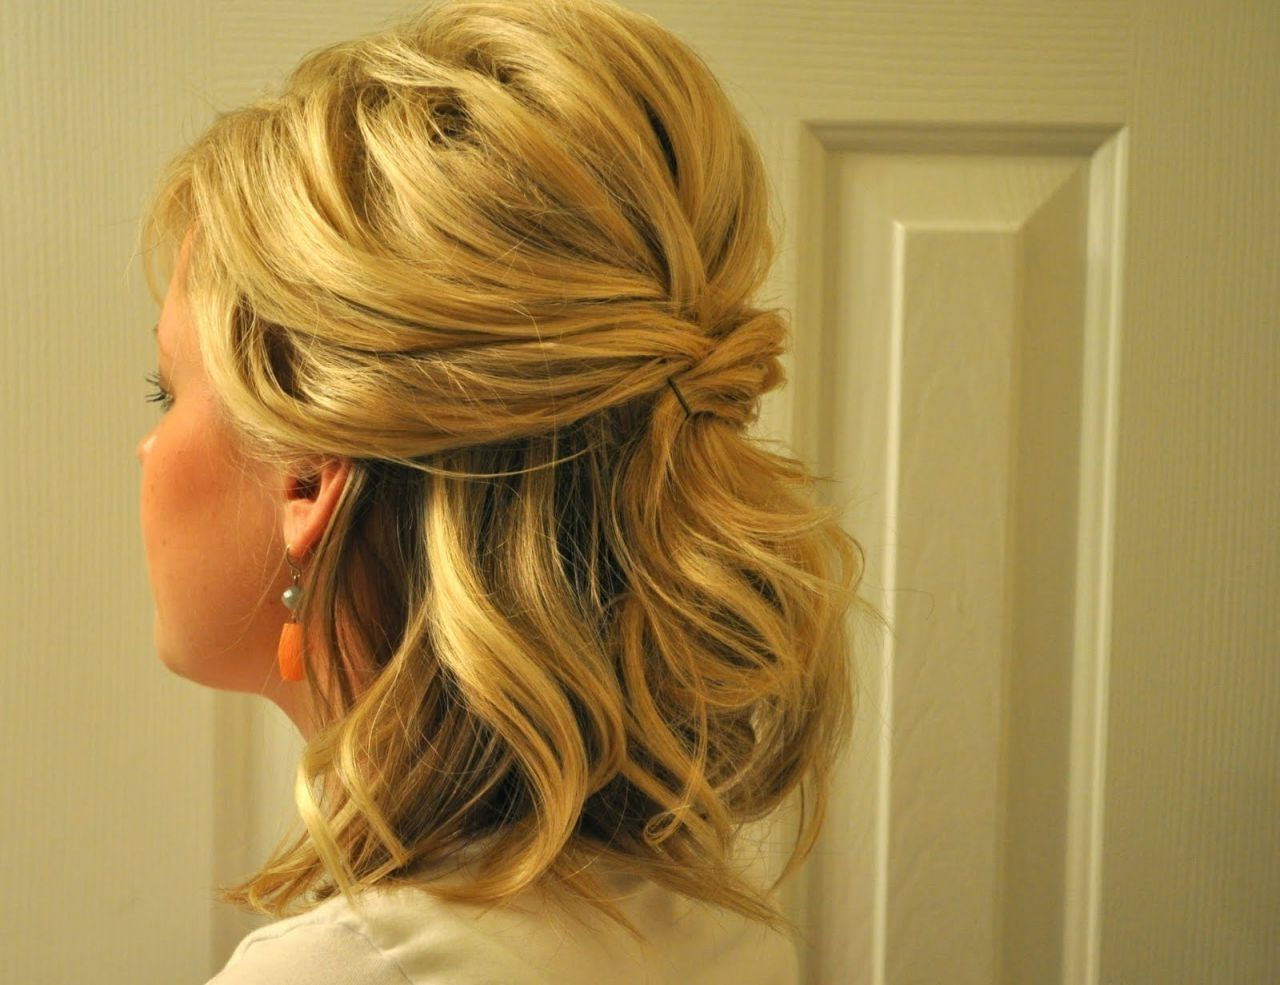 Half Up Half Down Wedding Hairstyles For Medium Length Hair Intended For Most Up To Date Half Long Half Medium Hairstyles (View 9 of 20)